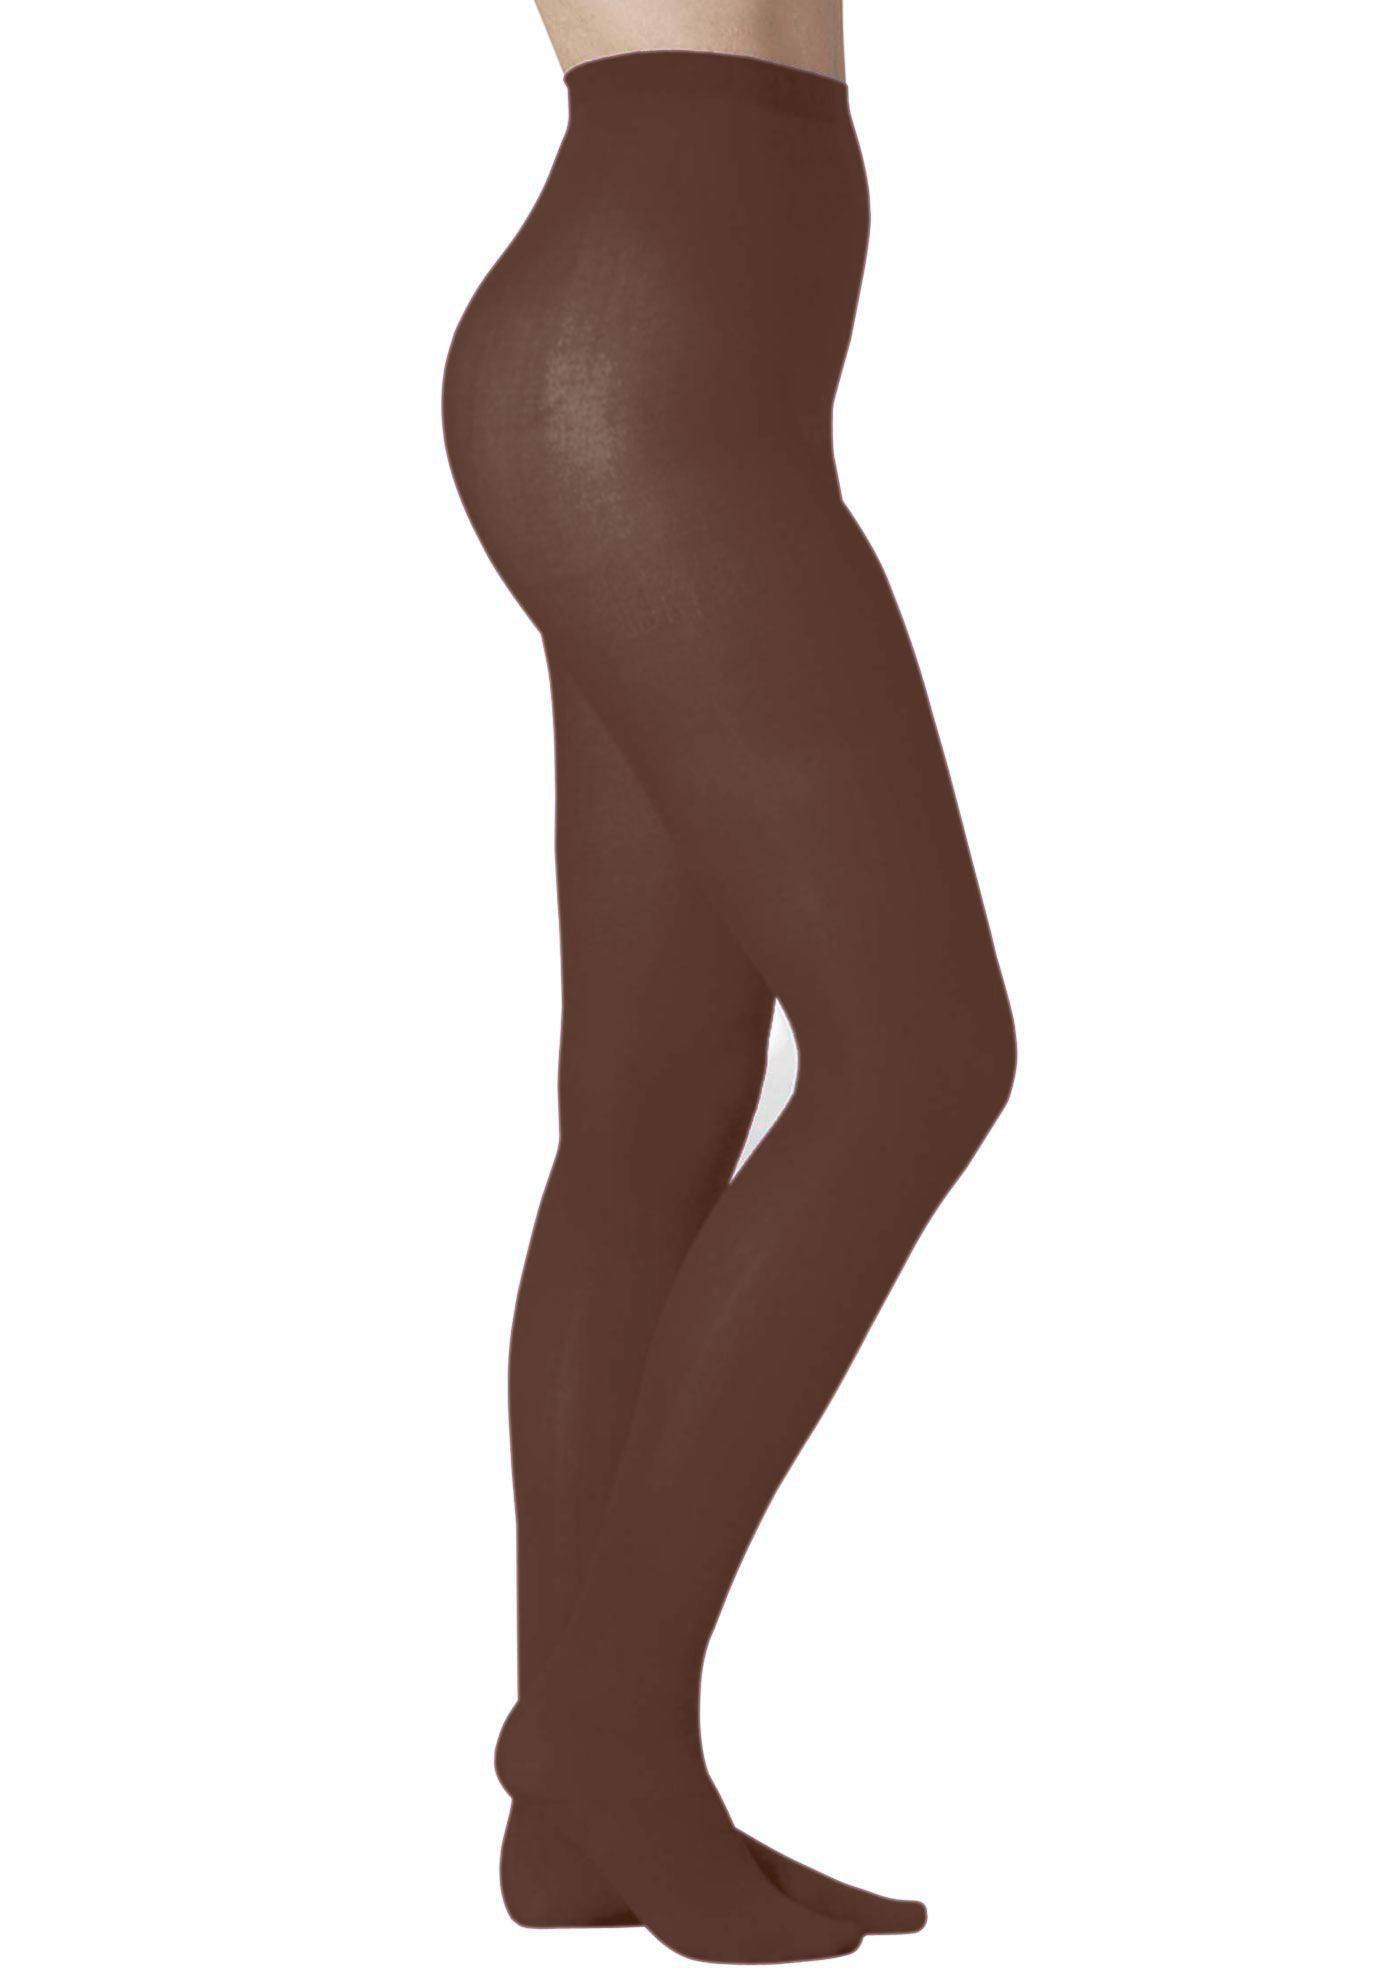 711626469f8f4 2 pack opaque footed tights by Comfort Choice - Women's Plus Size Clothing